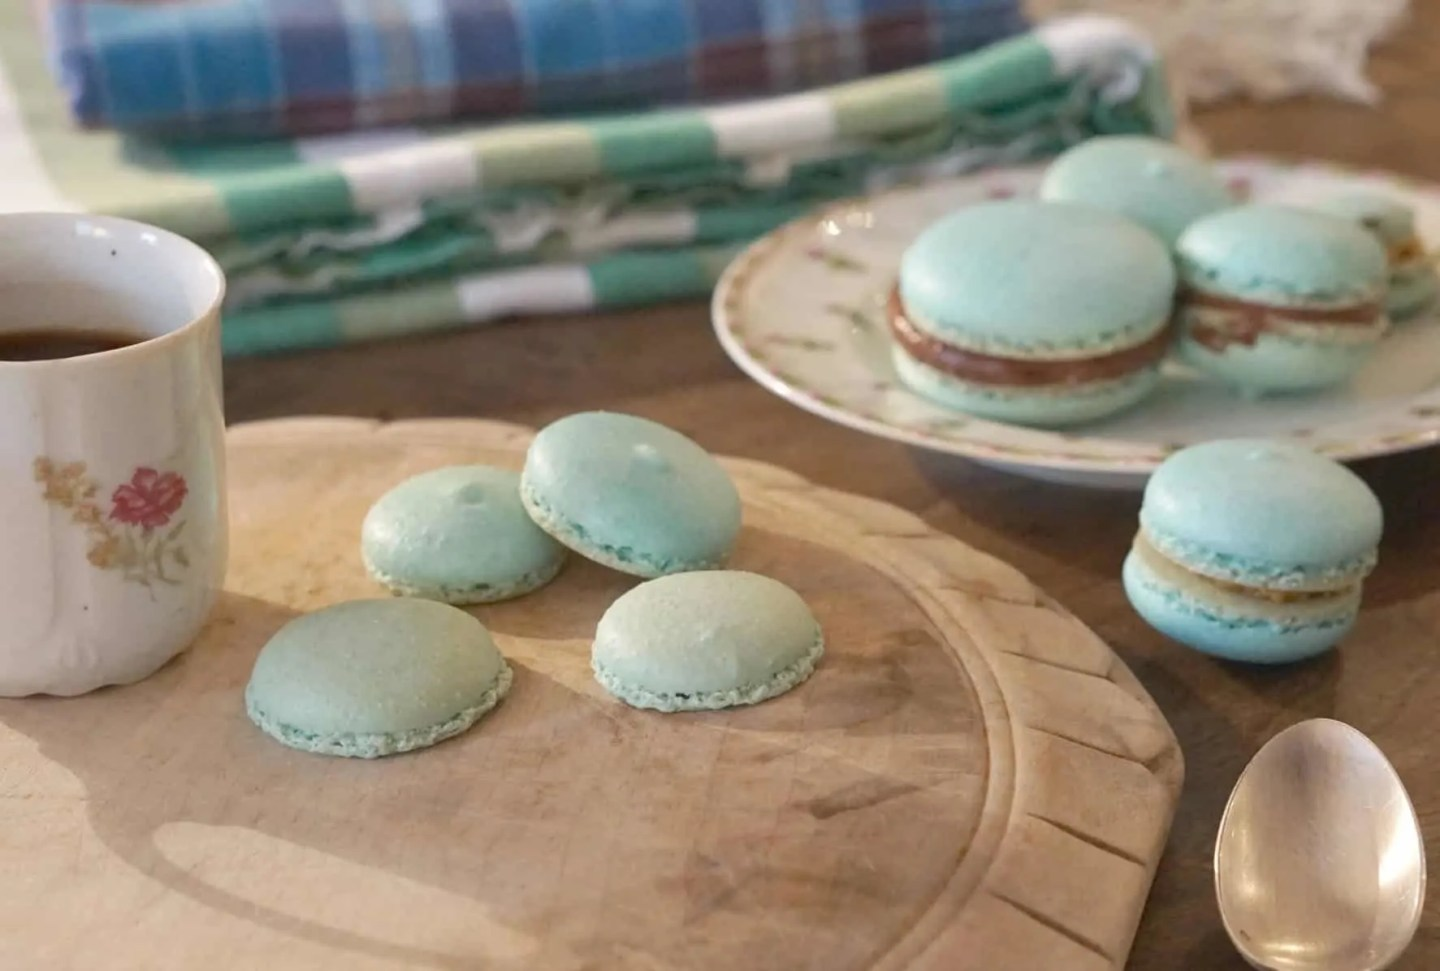 Making Macarons With Noemi at the Jeanne D'Arc Cookery School